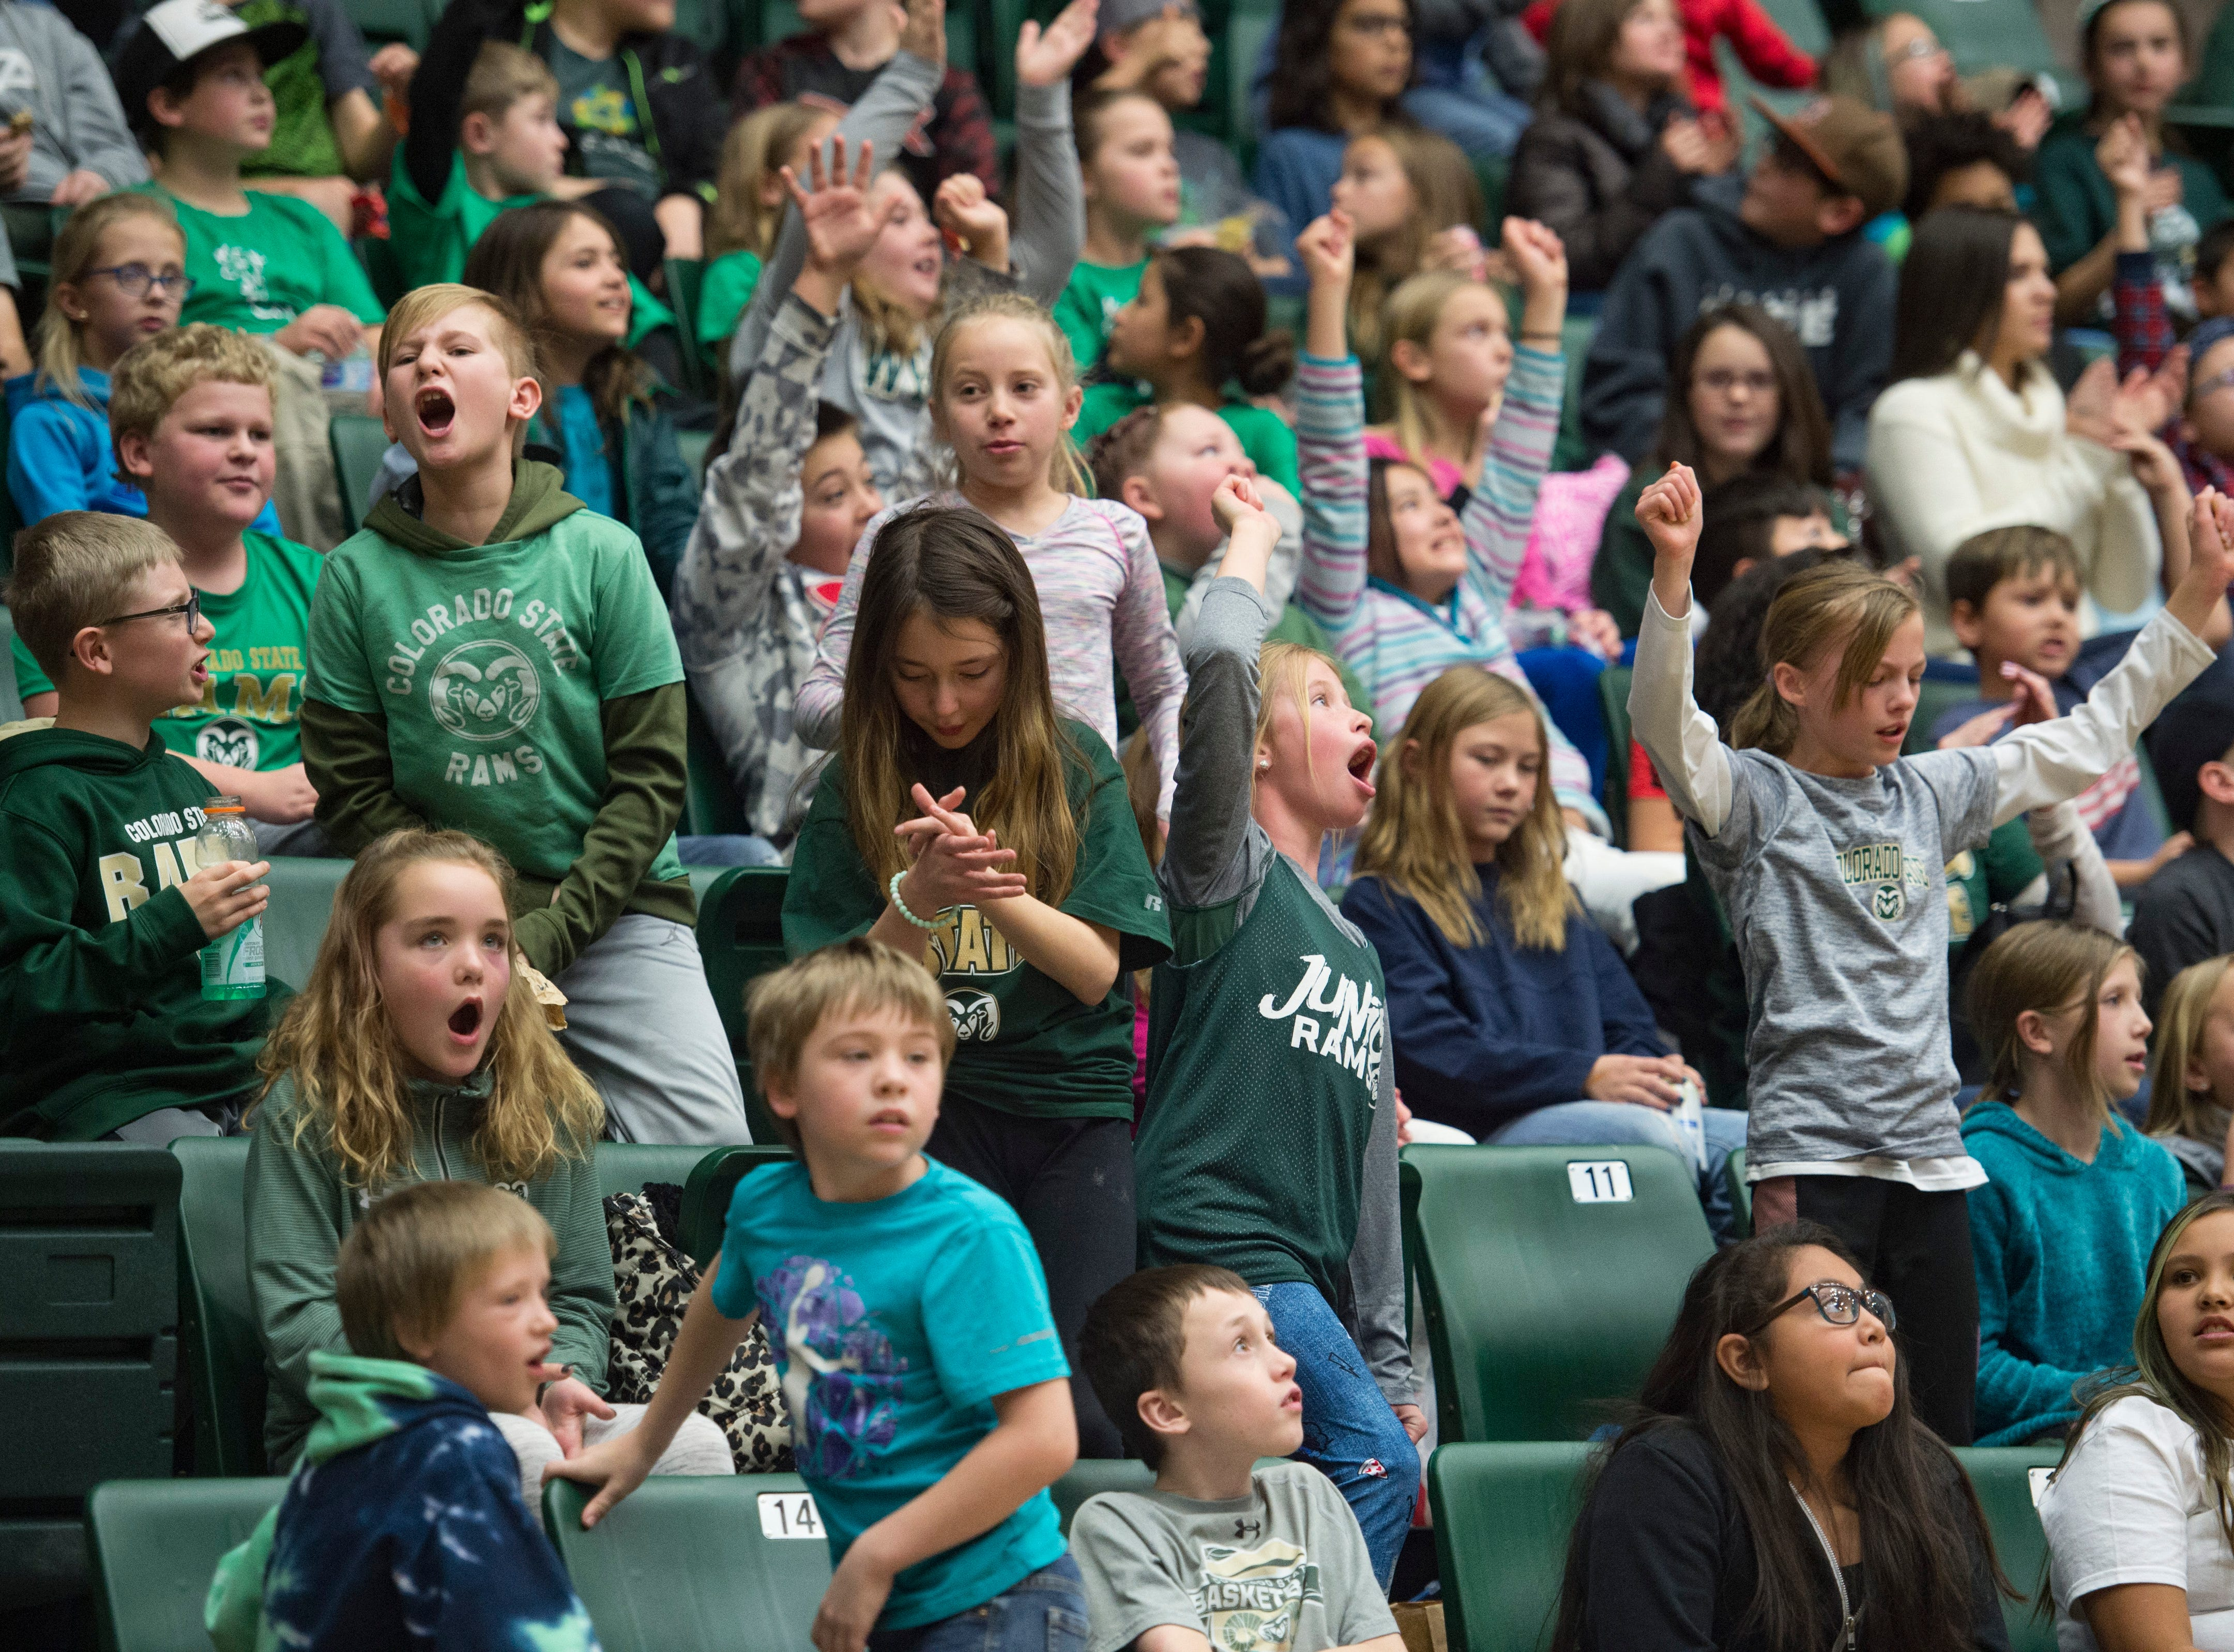 Elementary school students cheer as they support the CSU women's basketball team as they took on Northern Arizona at Moby Arena on Wednesday, December 5, 2018.